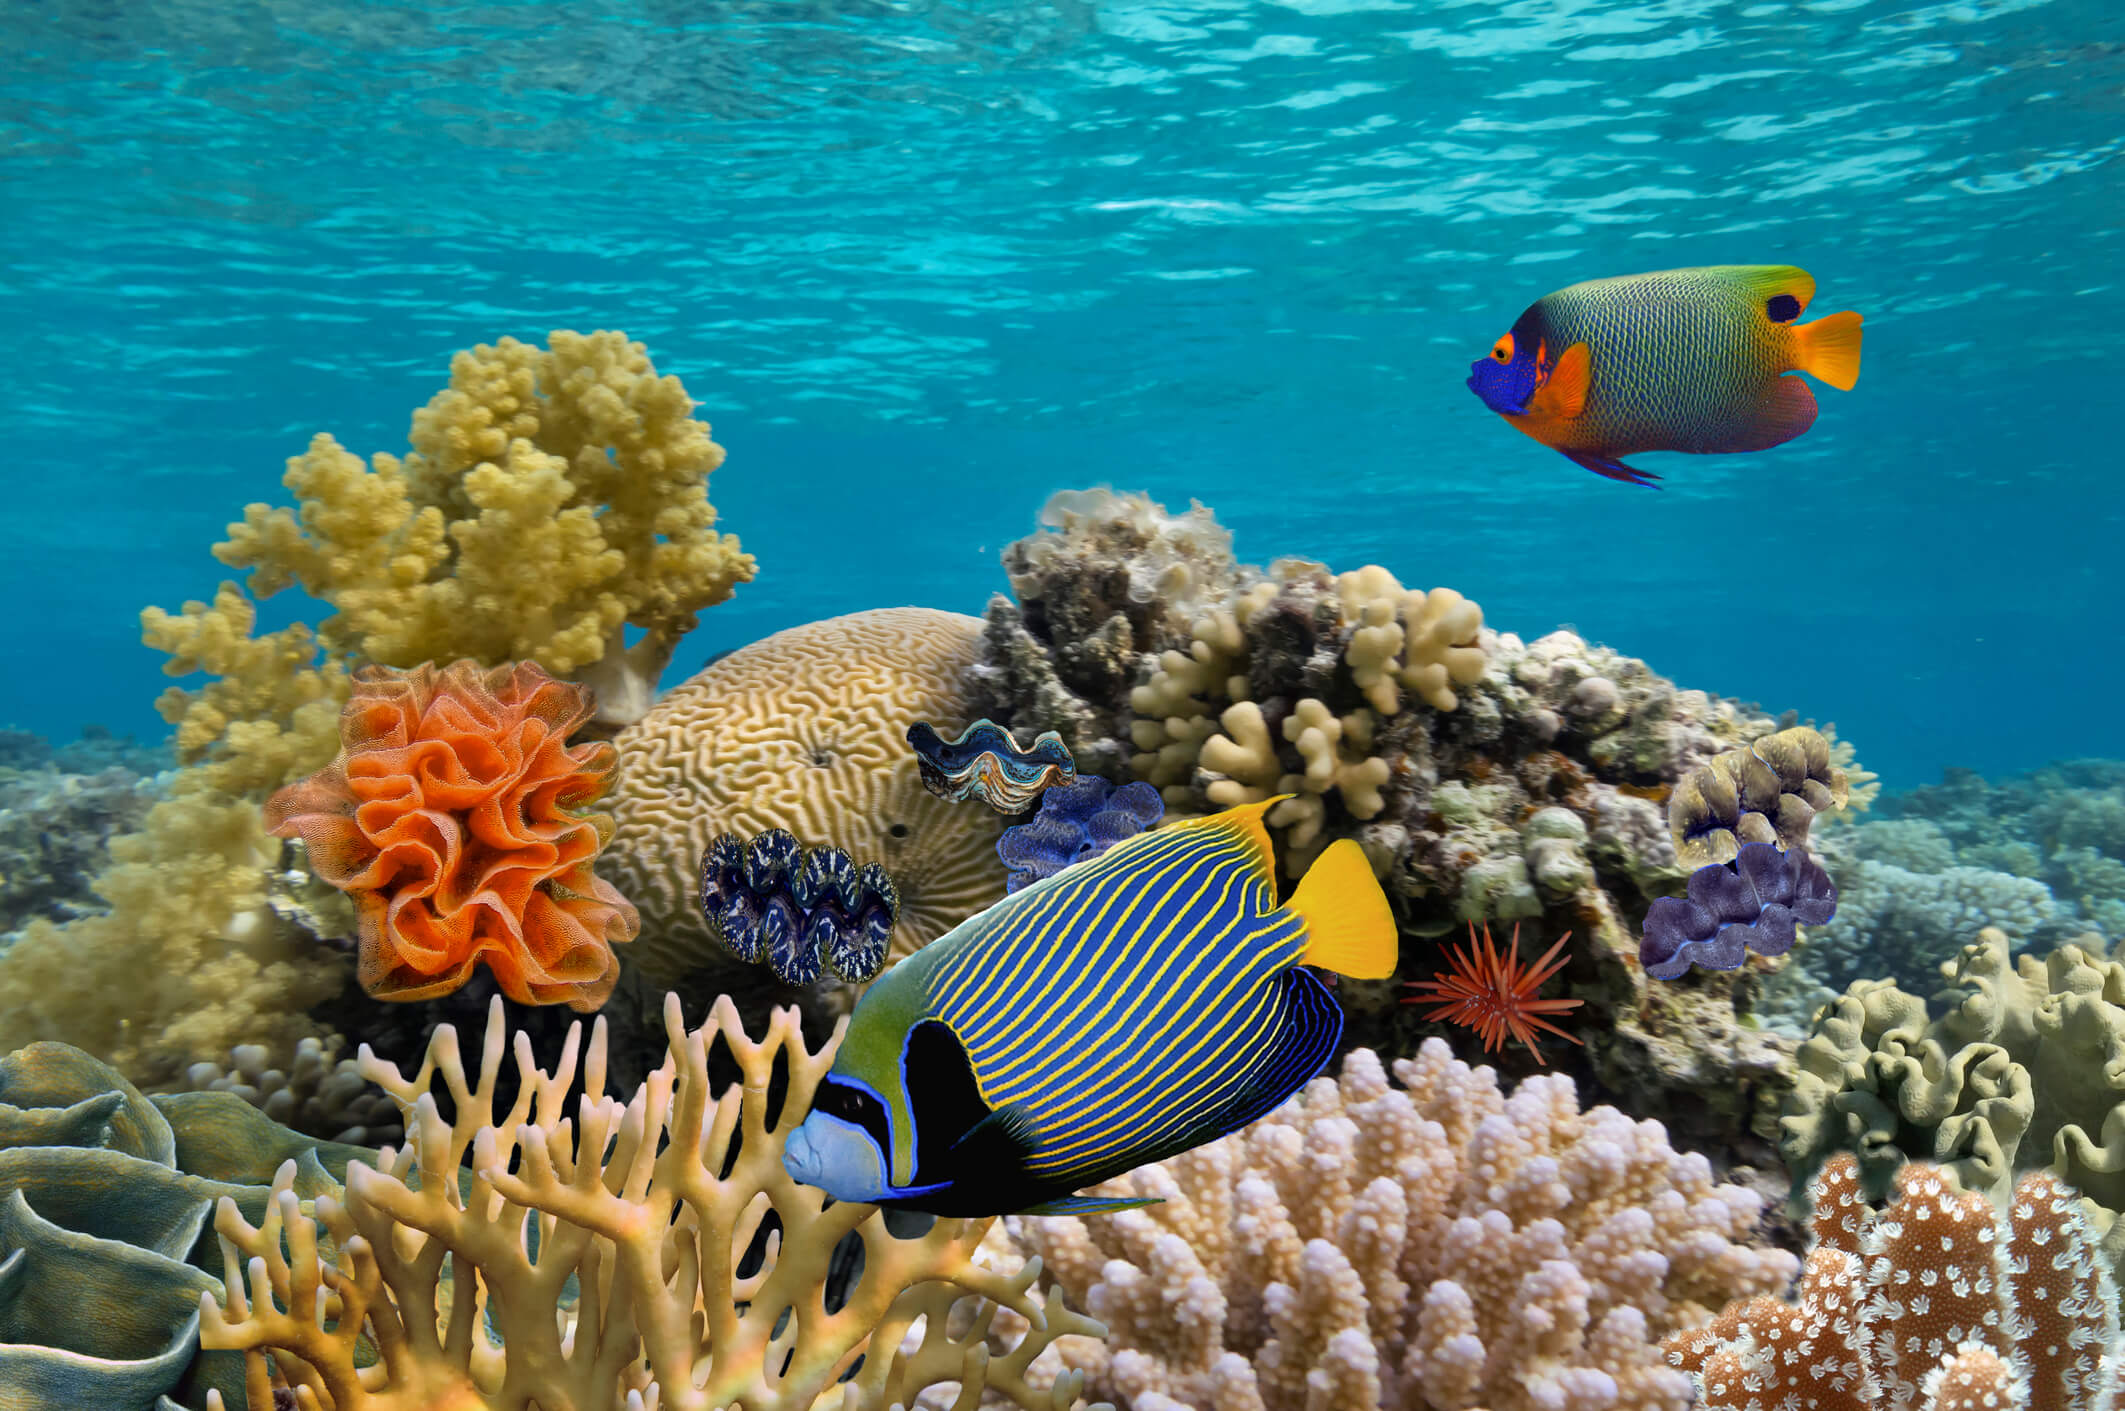 Colourful fish and corals in an aquarium - things to do in Kuala Lumpur